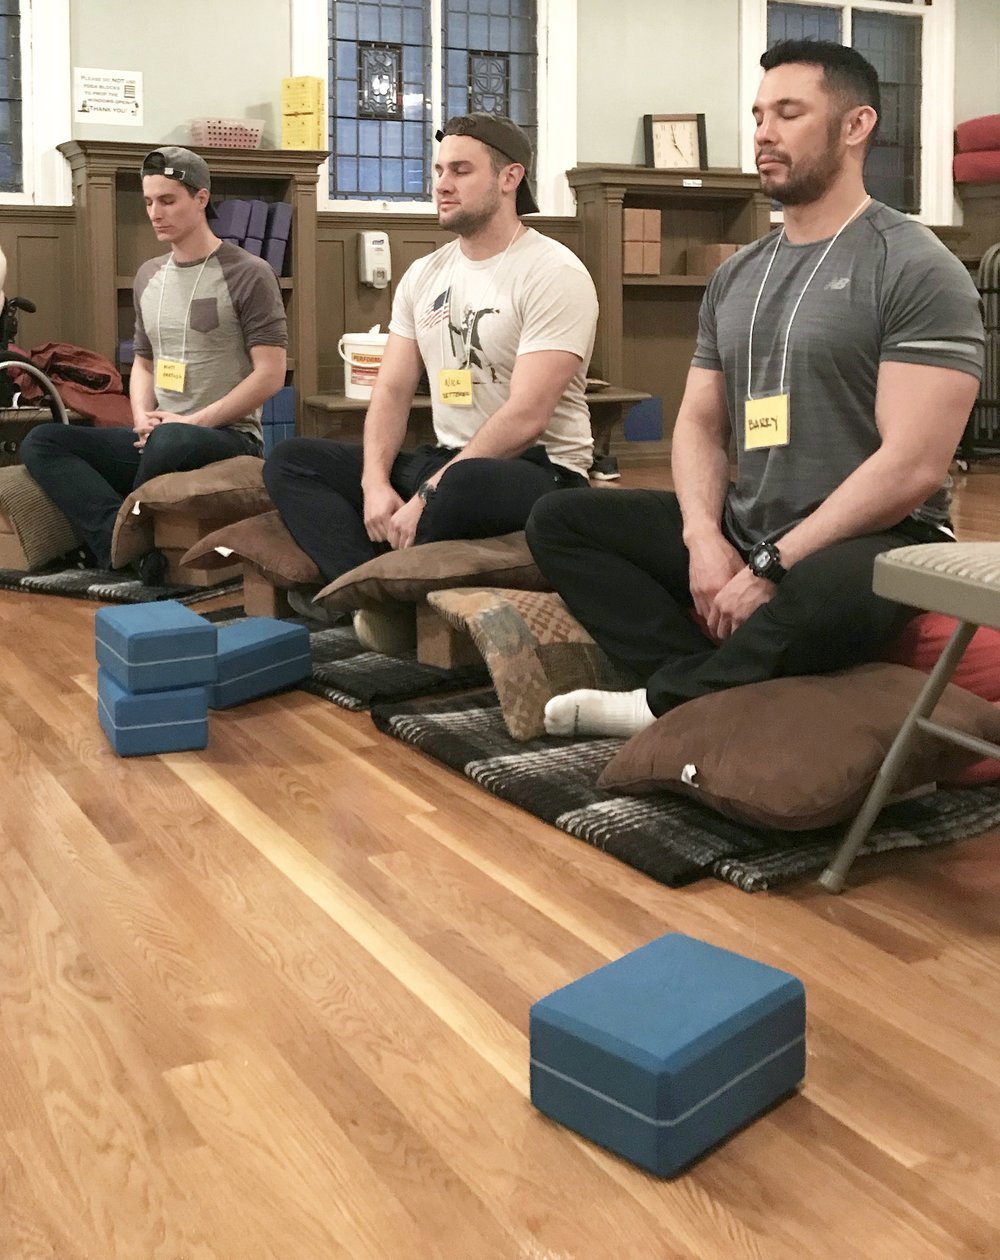 If you're on the floor, yoga blocks give the knees stability